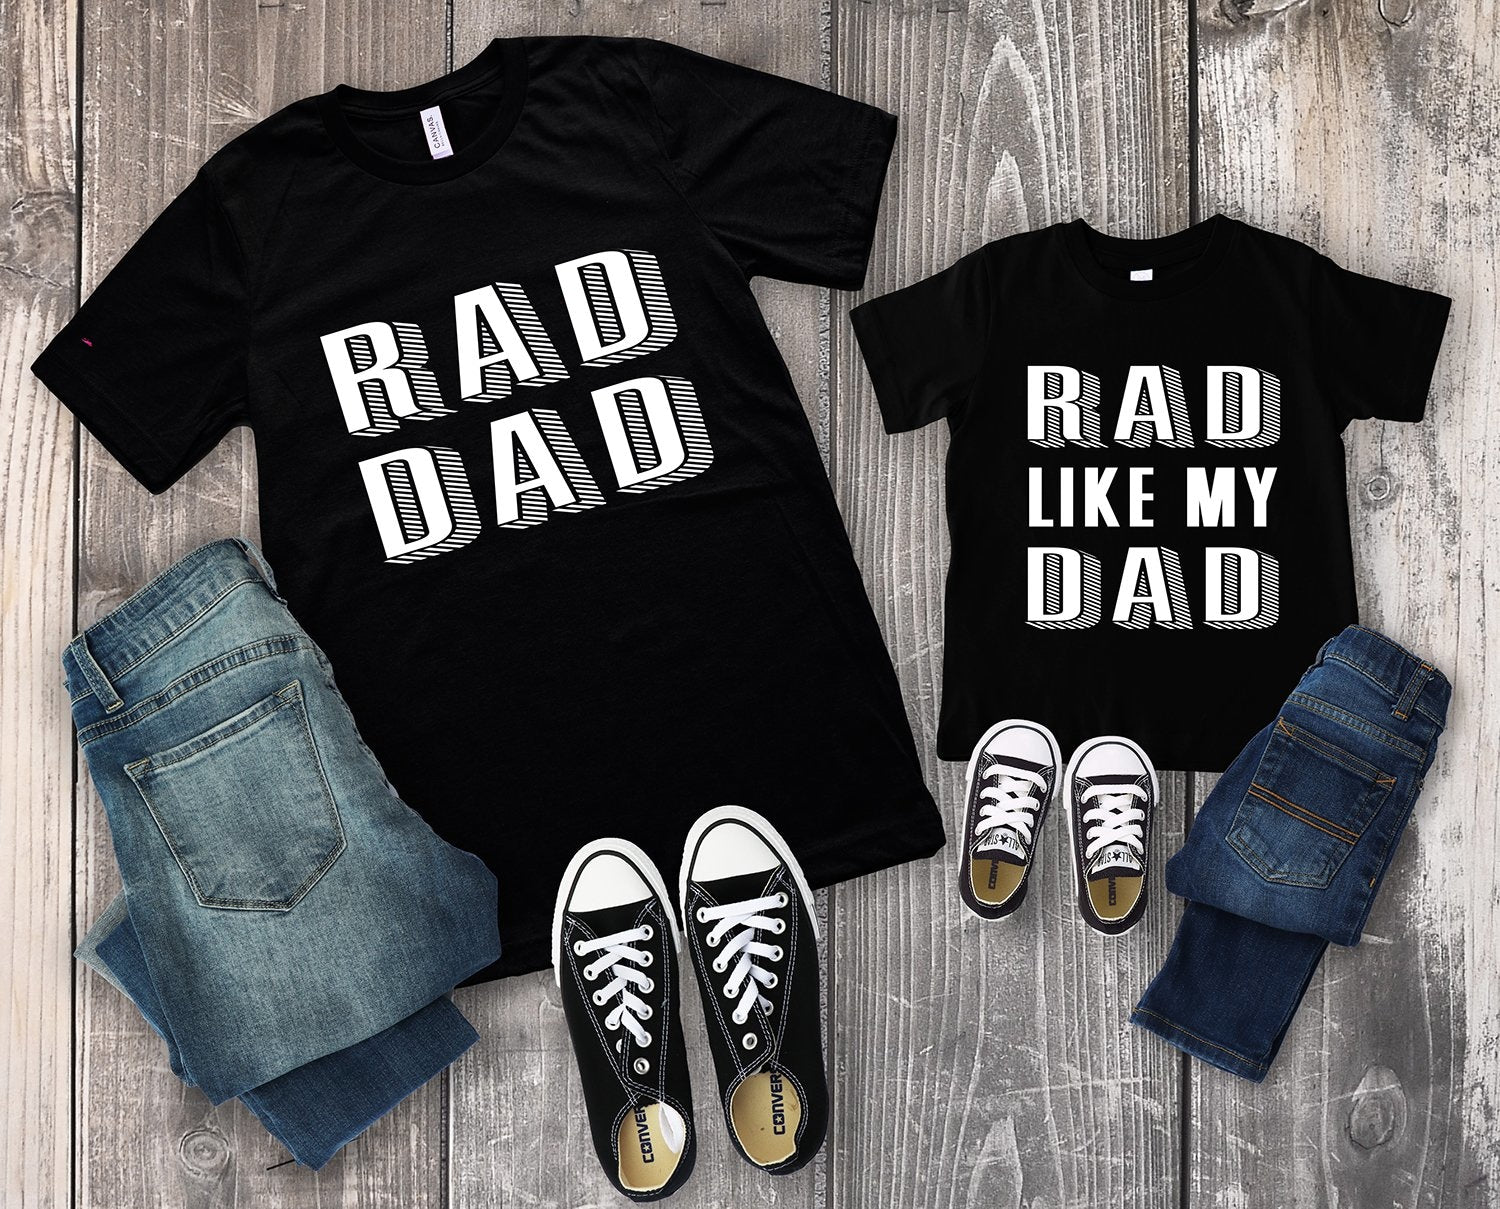 Free Download and upload svg images with cc0 public domain license. Rad Dad Father S Day Shirts Svg Files Happiness Is Homemade SVG, PNG, EPS, DXF File